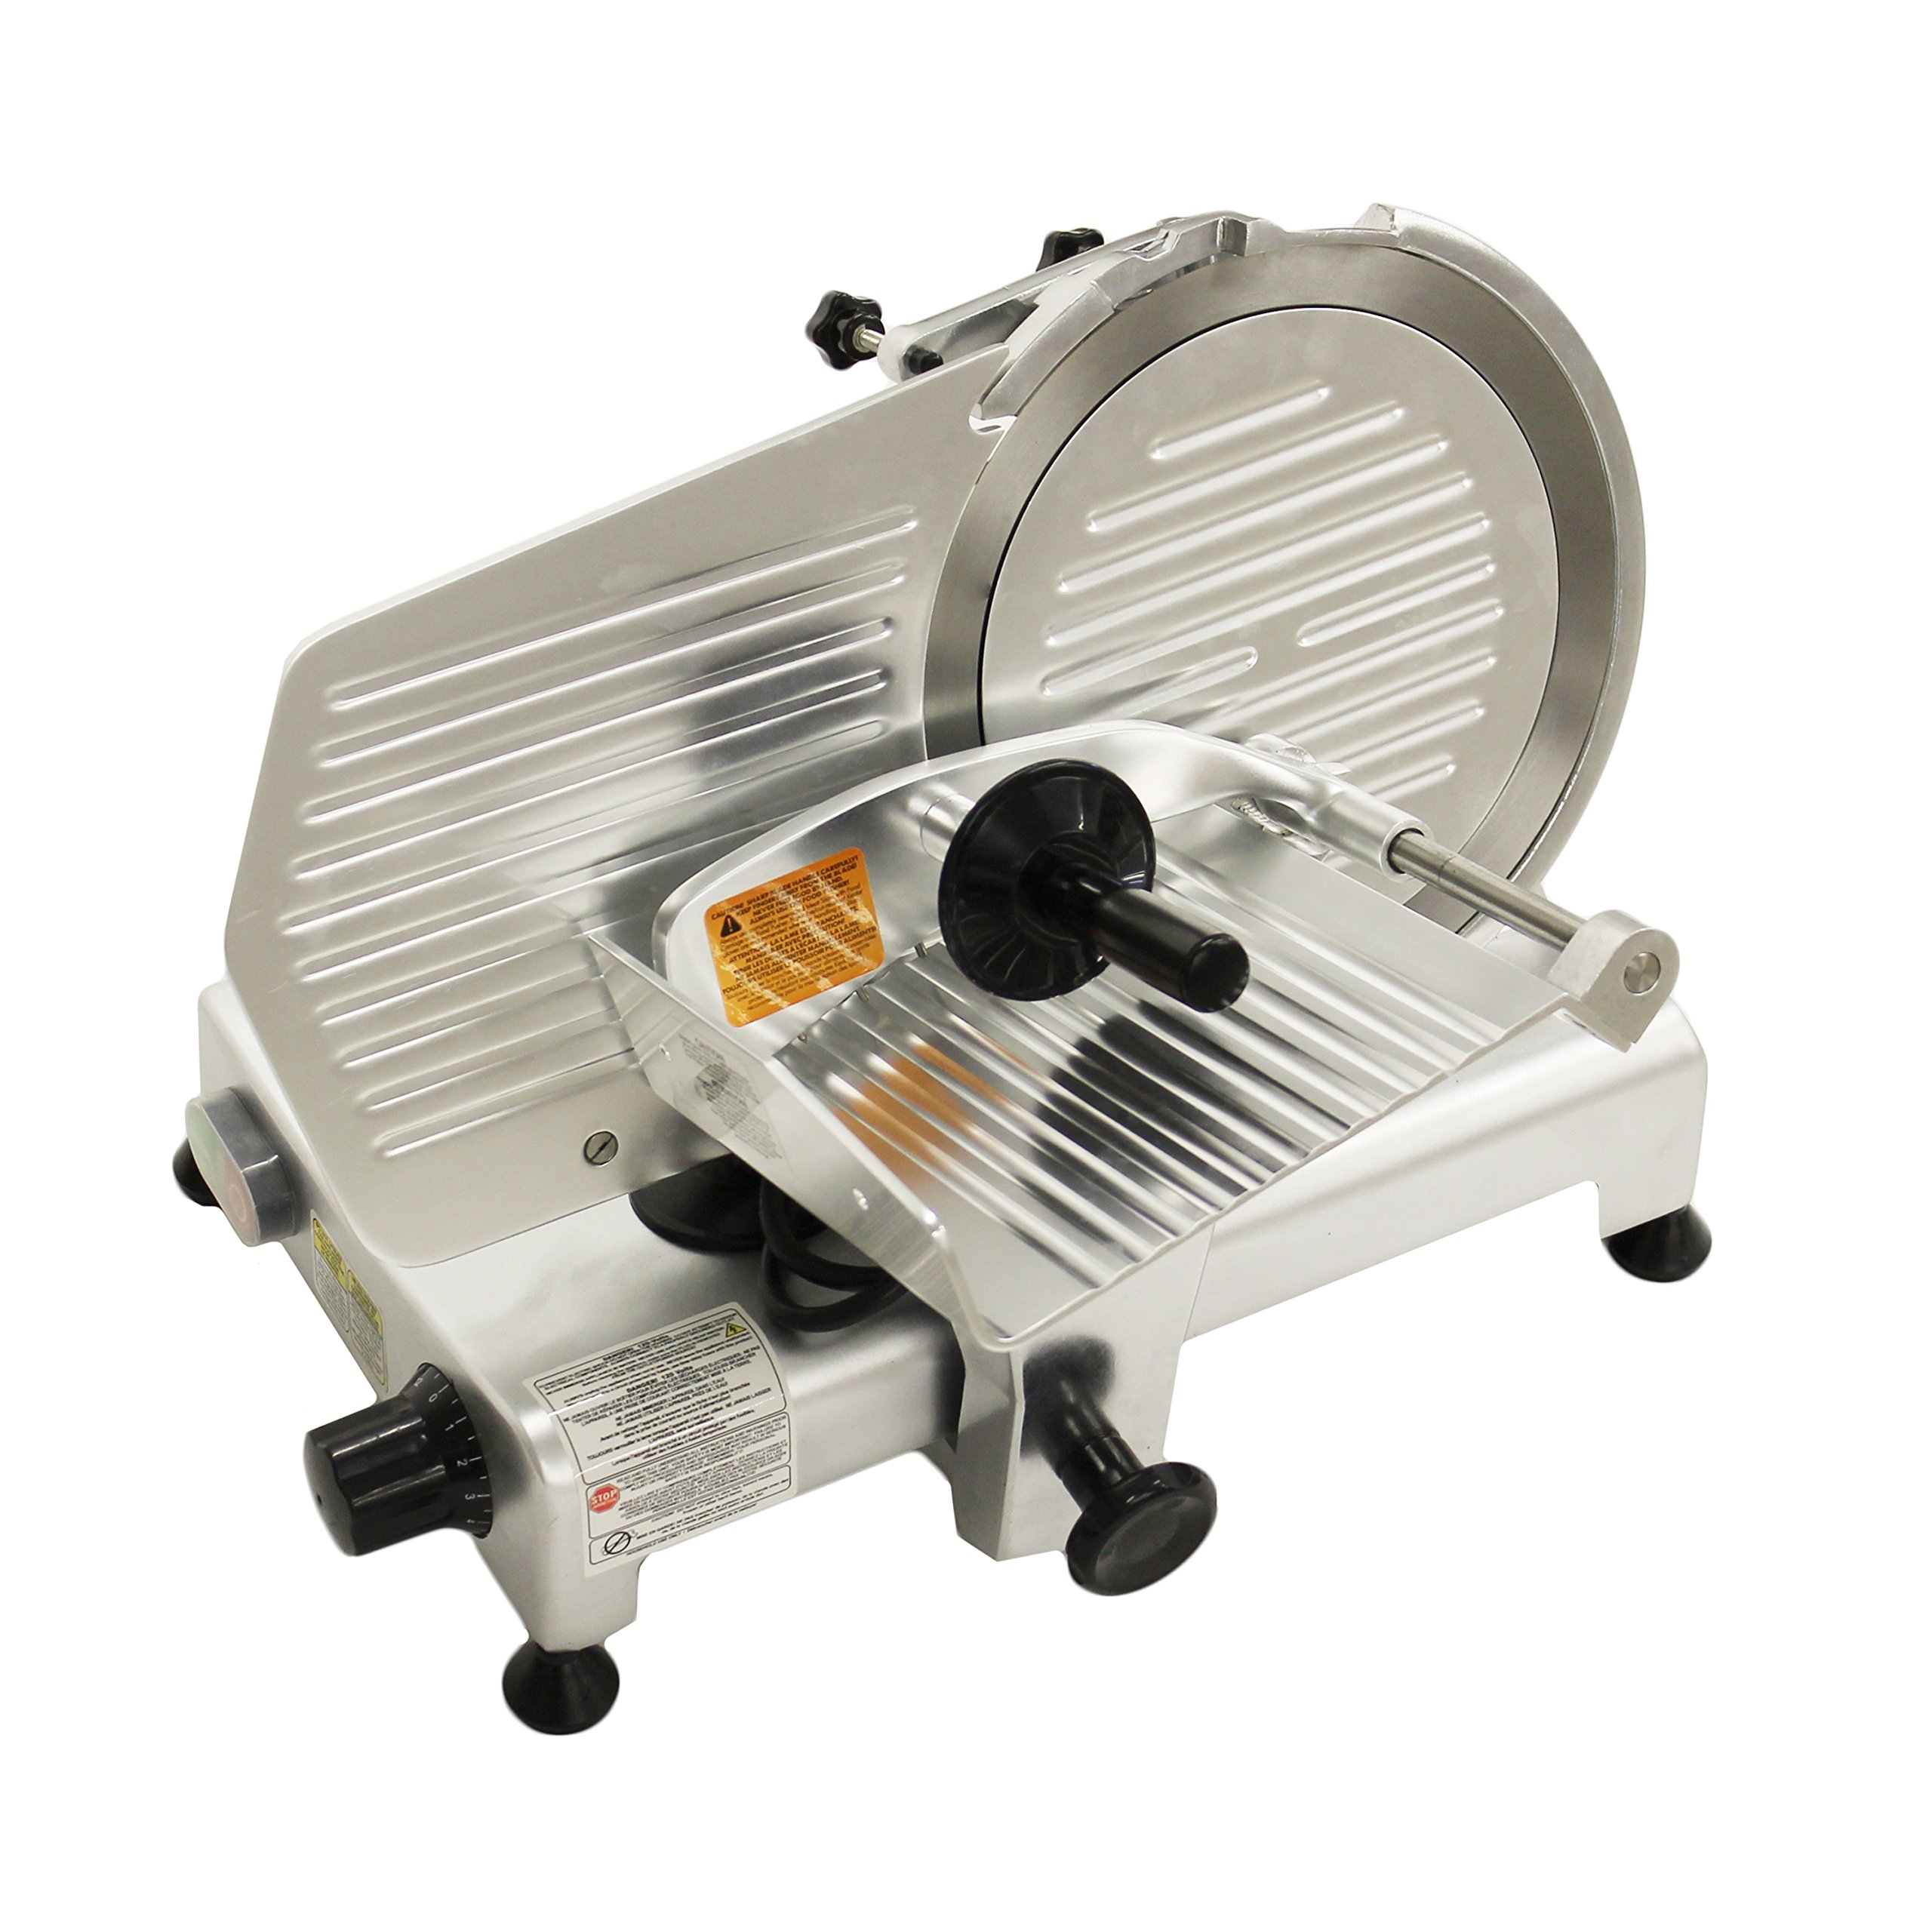 Weston Products Meat Slicer, Silver